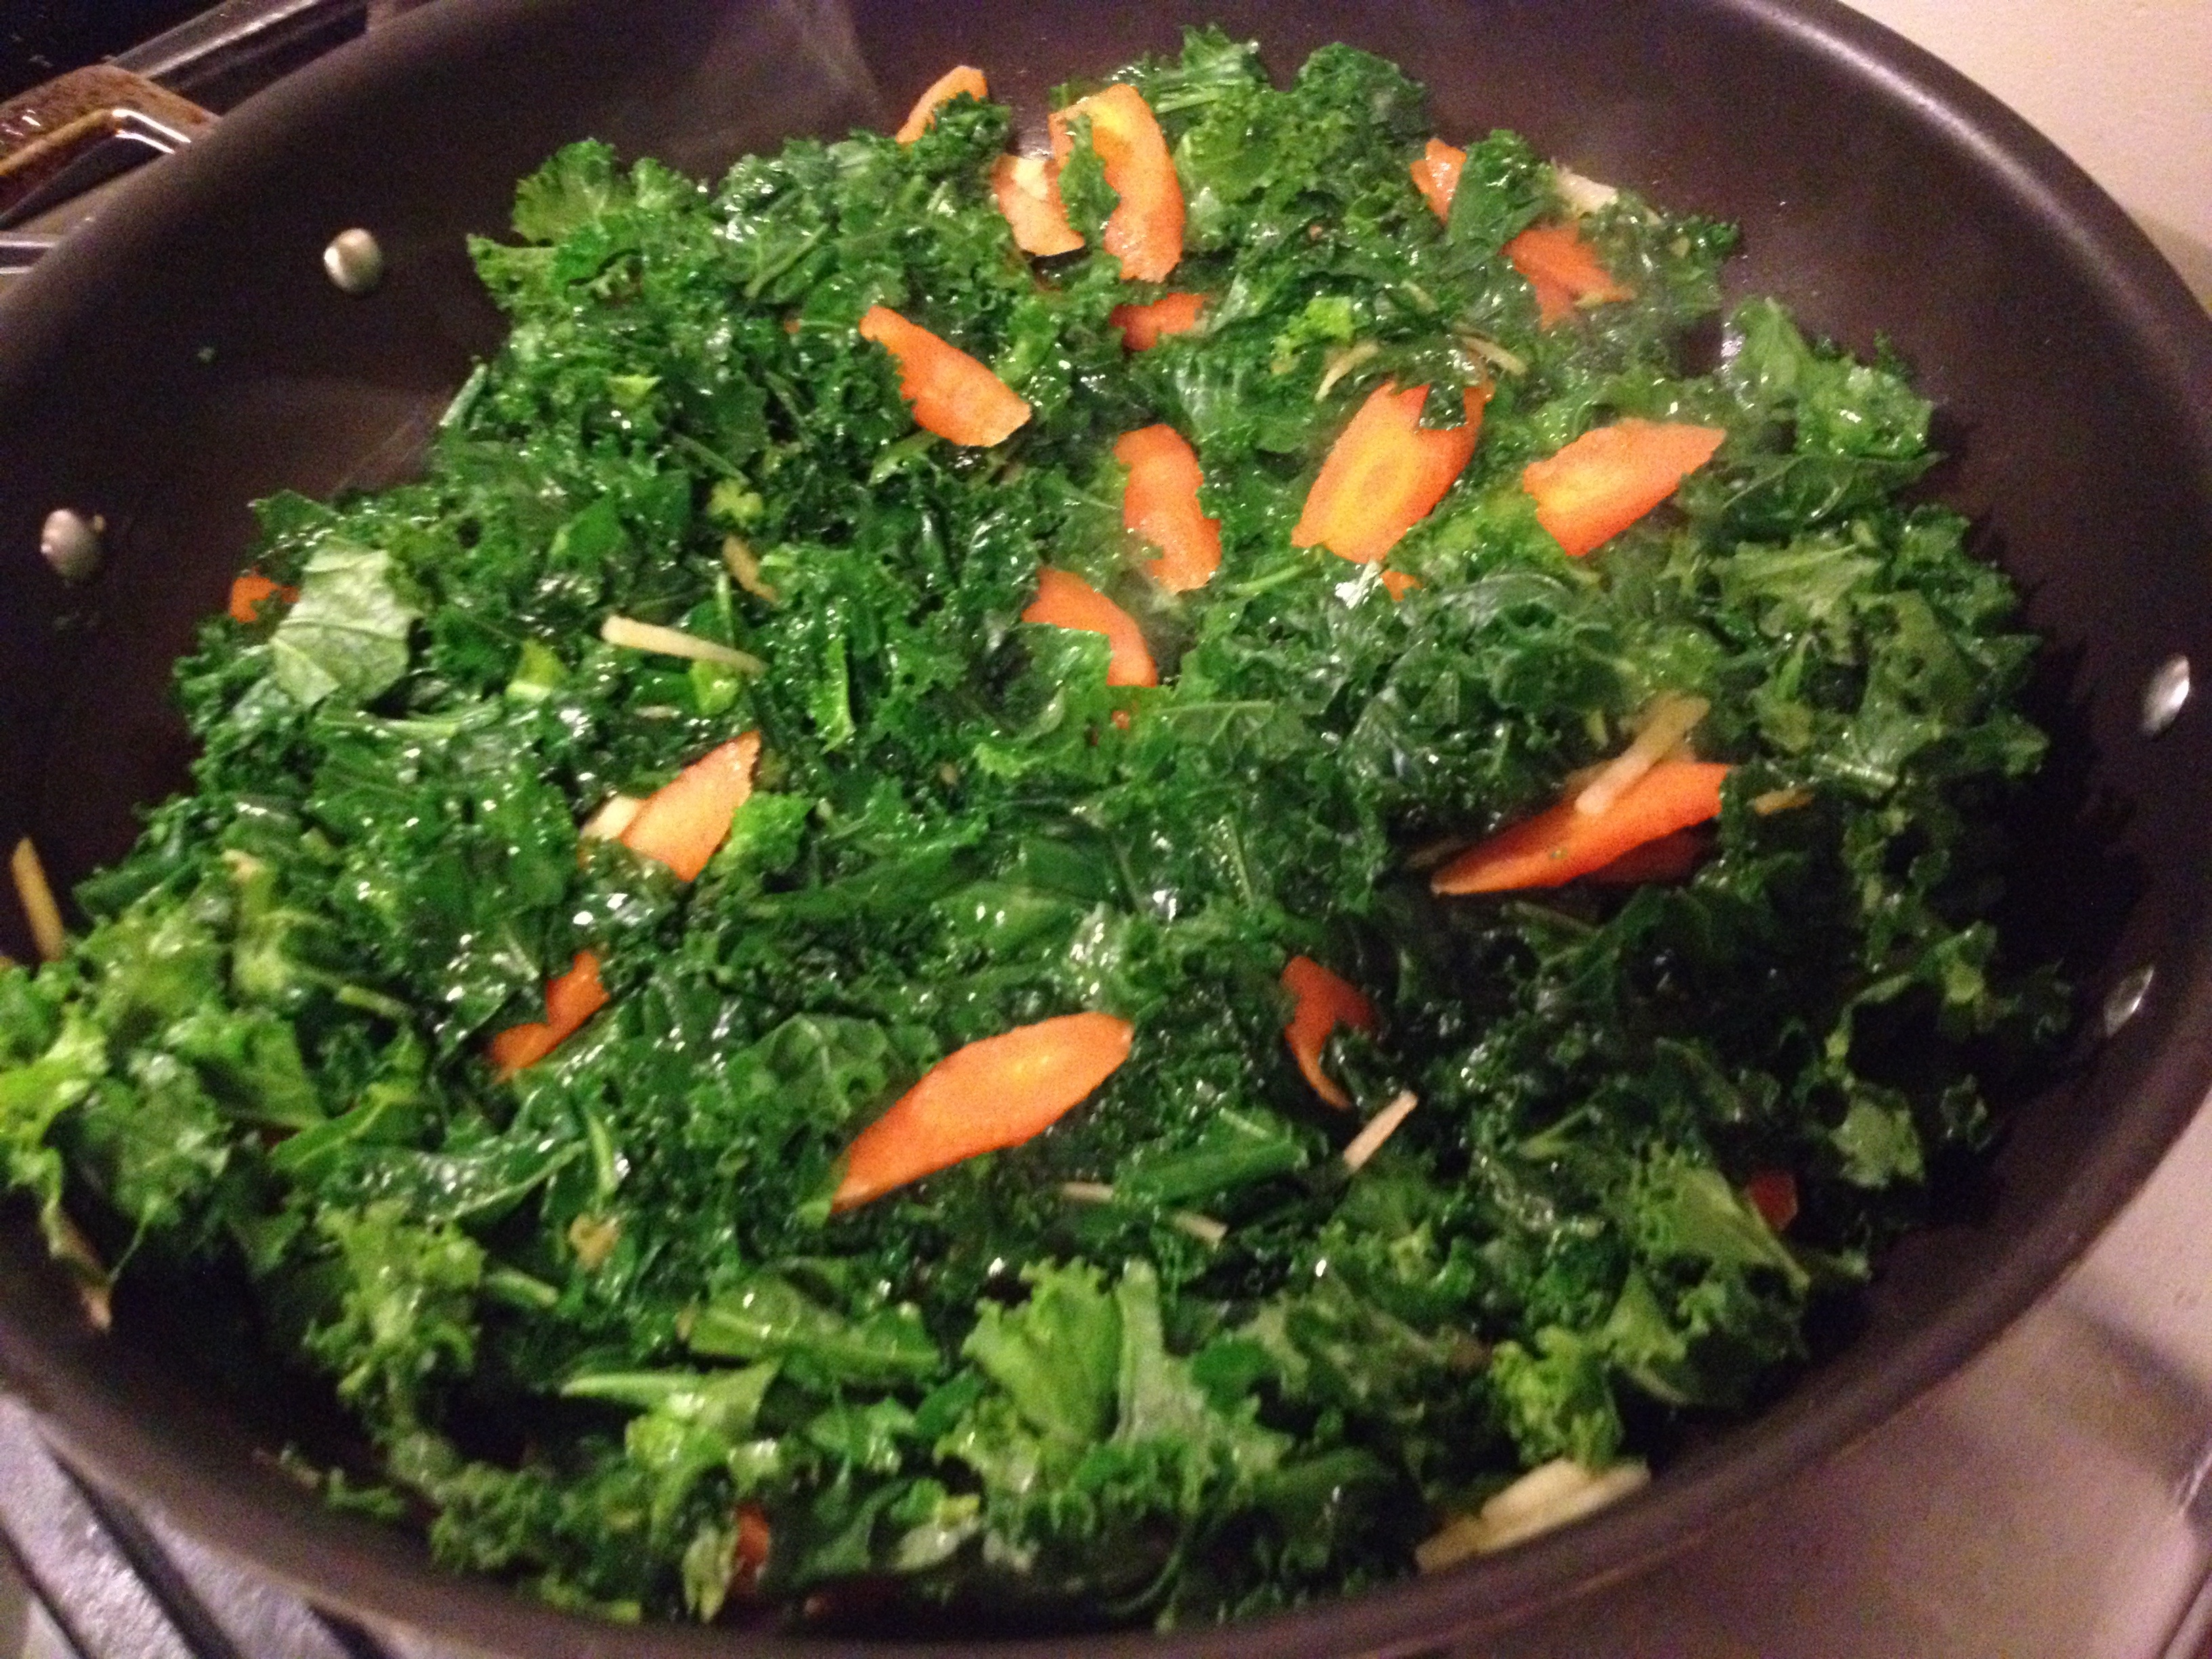 Kale with ginger and carrots and steam in a skillet.